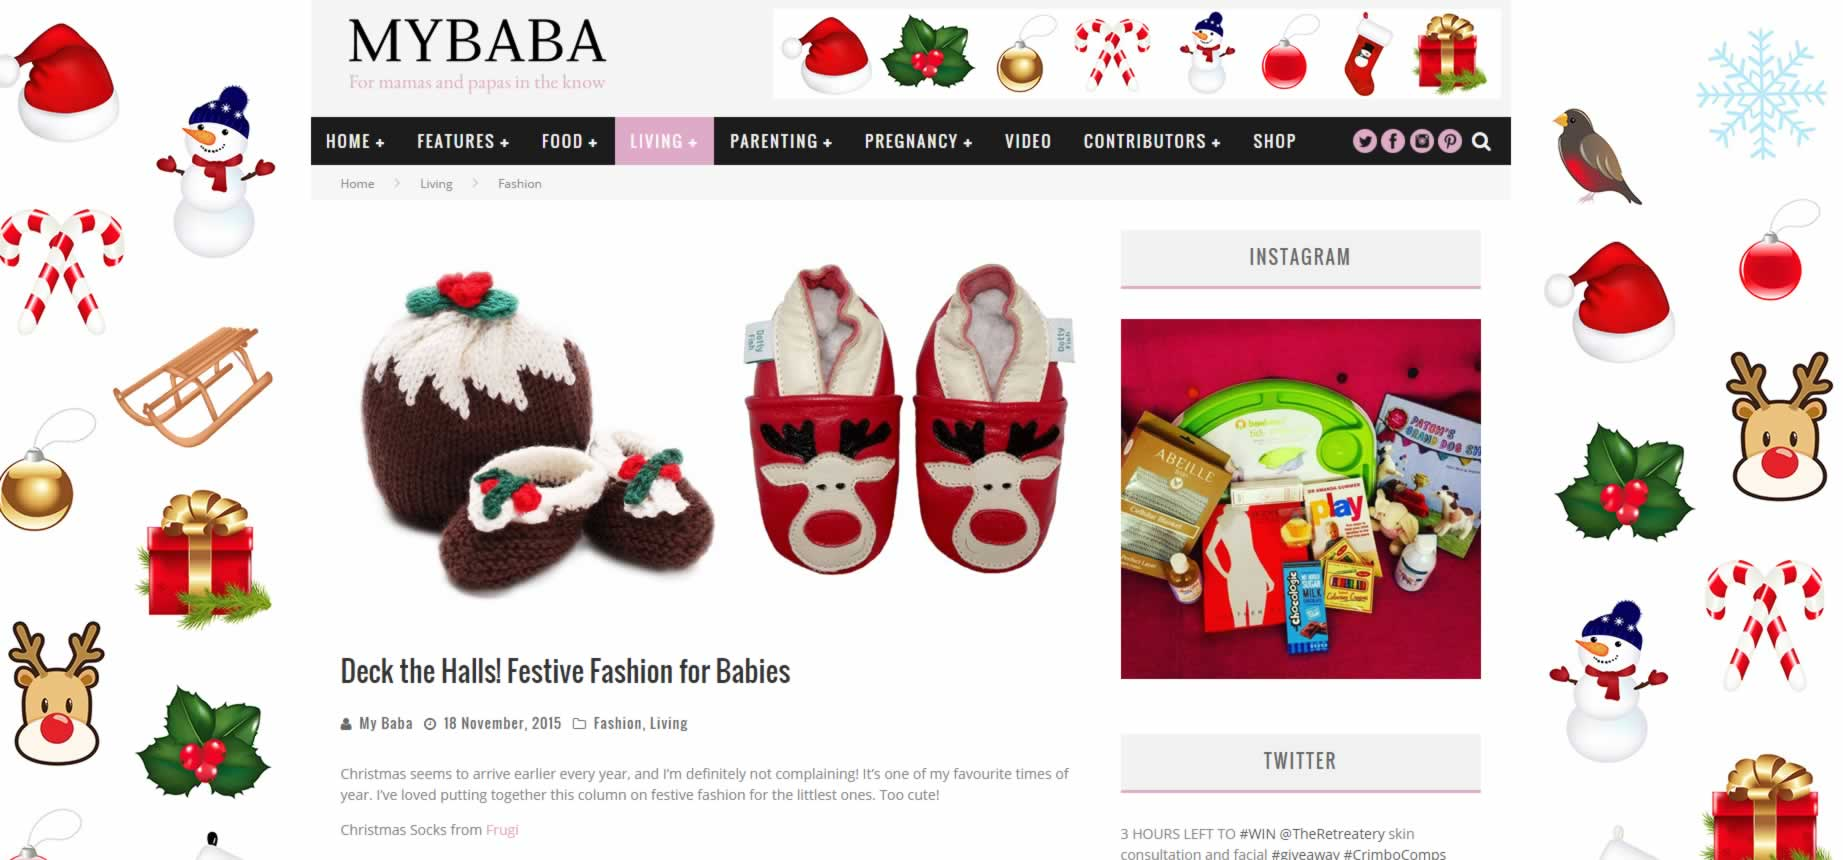 My Baba Parenting Blog - Festive Fashion for Babies